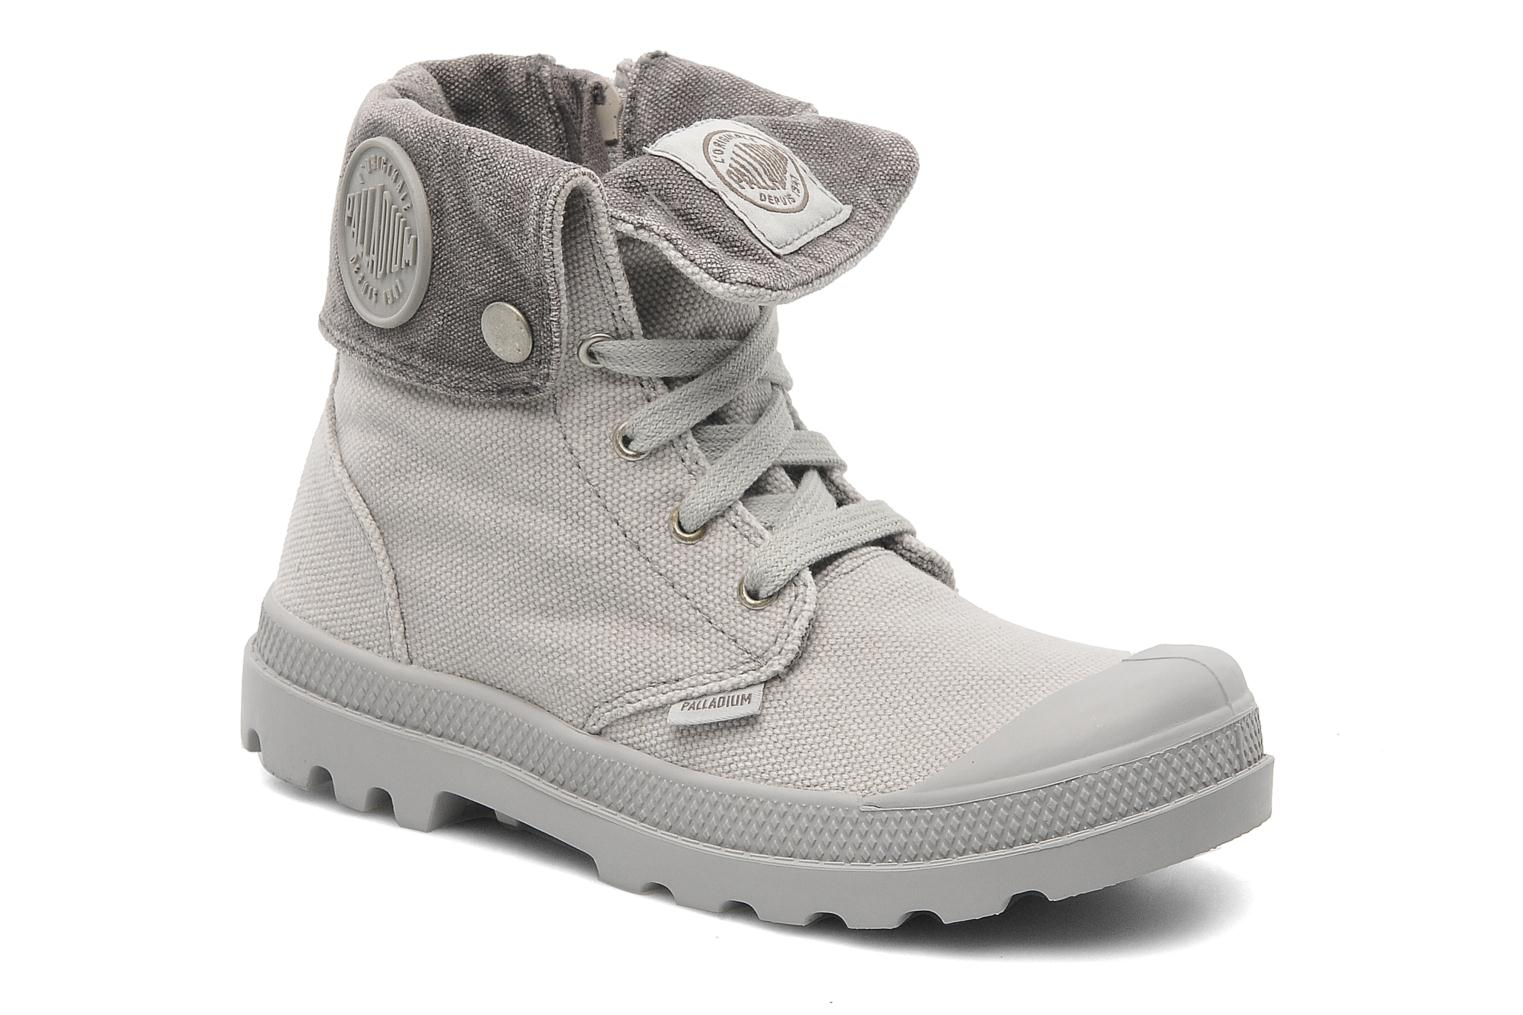 Bottines et boots Palladium Baggy Zipper K Gris vue détail/paire